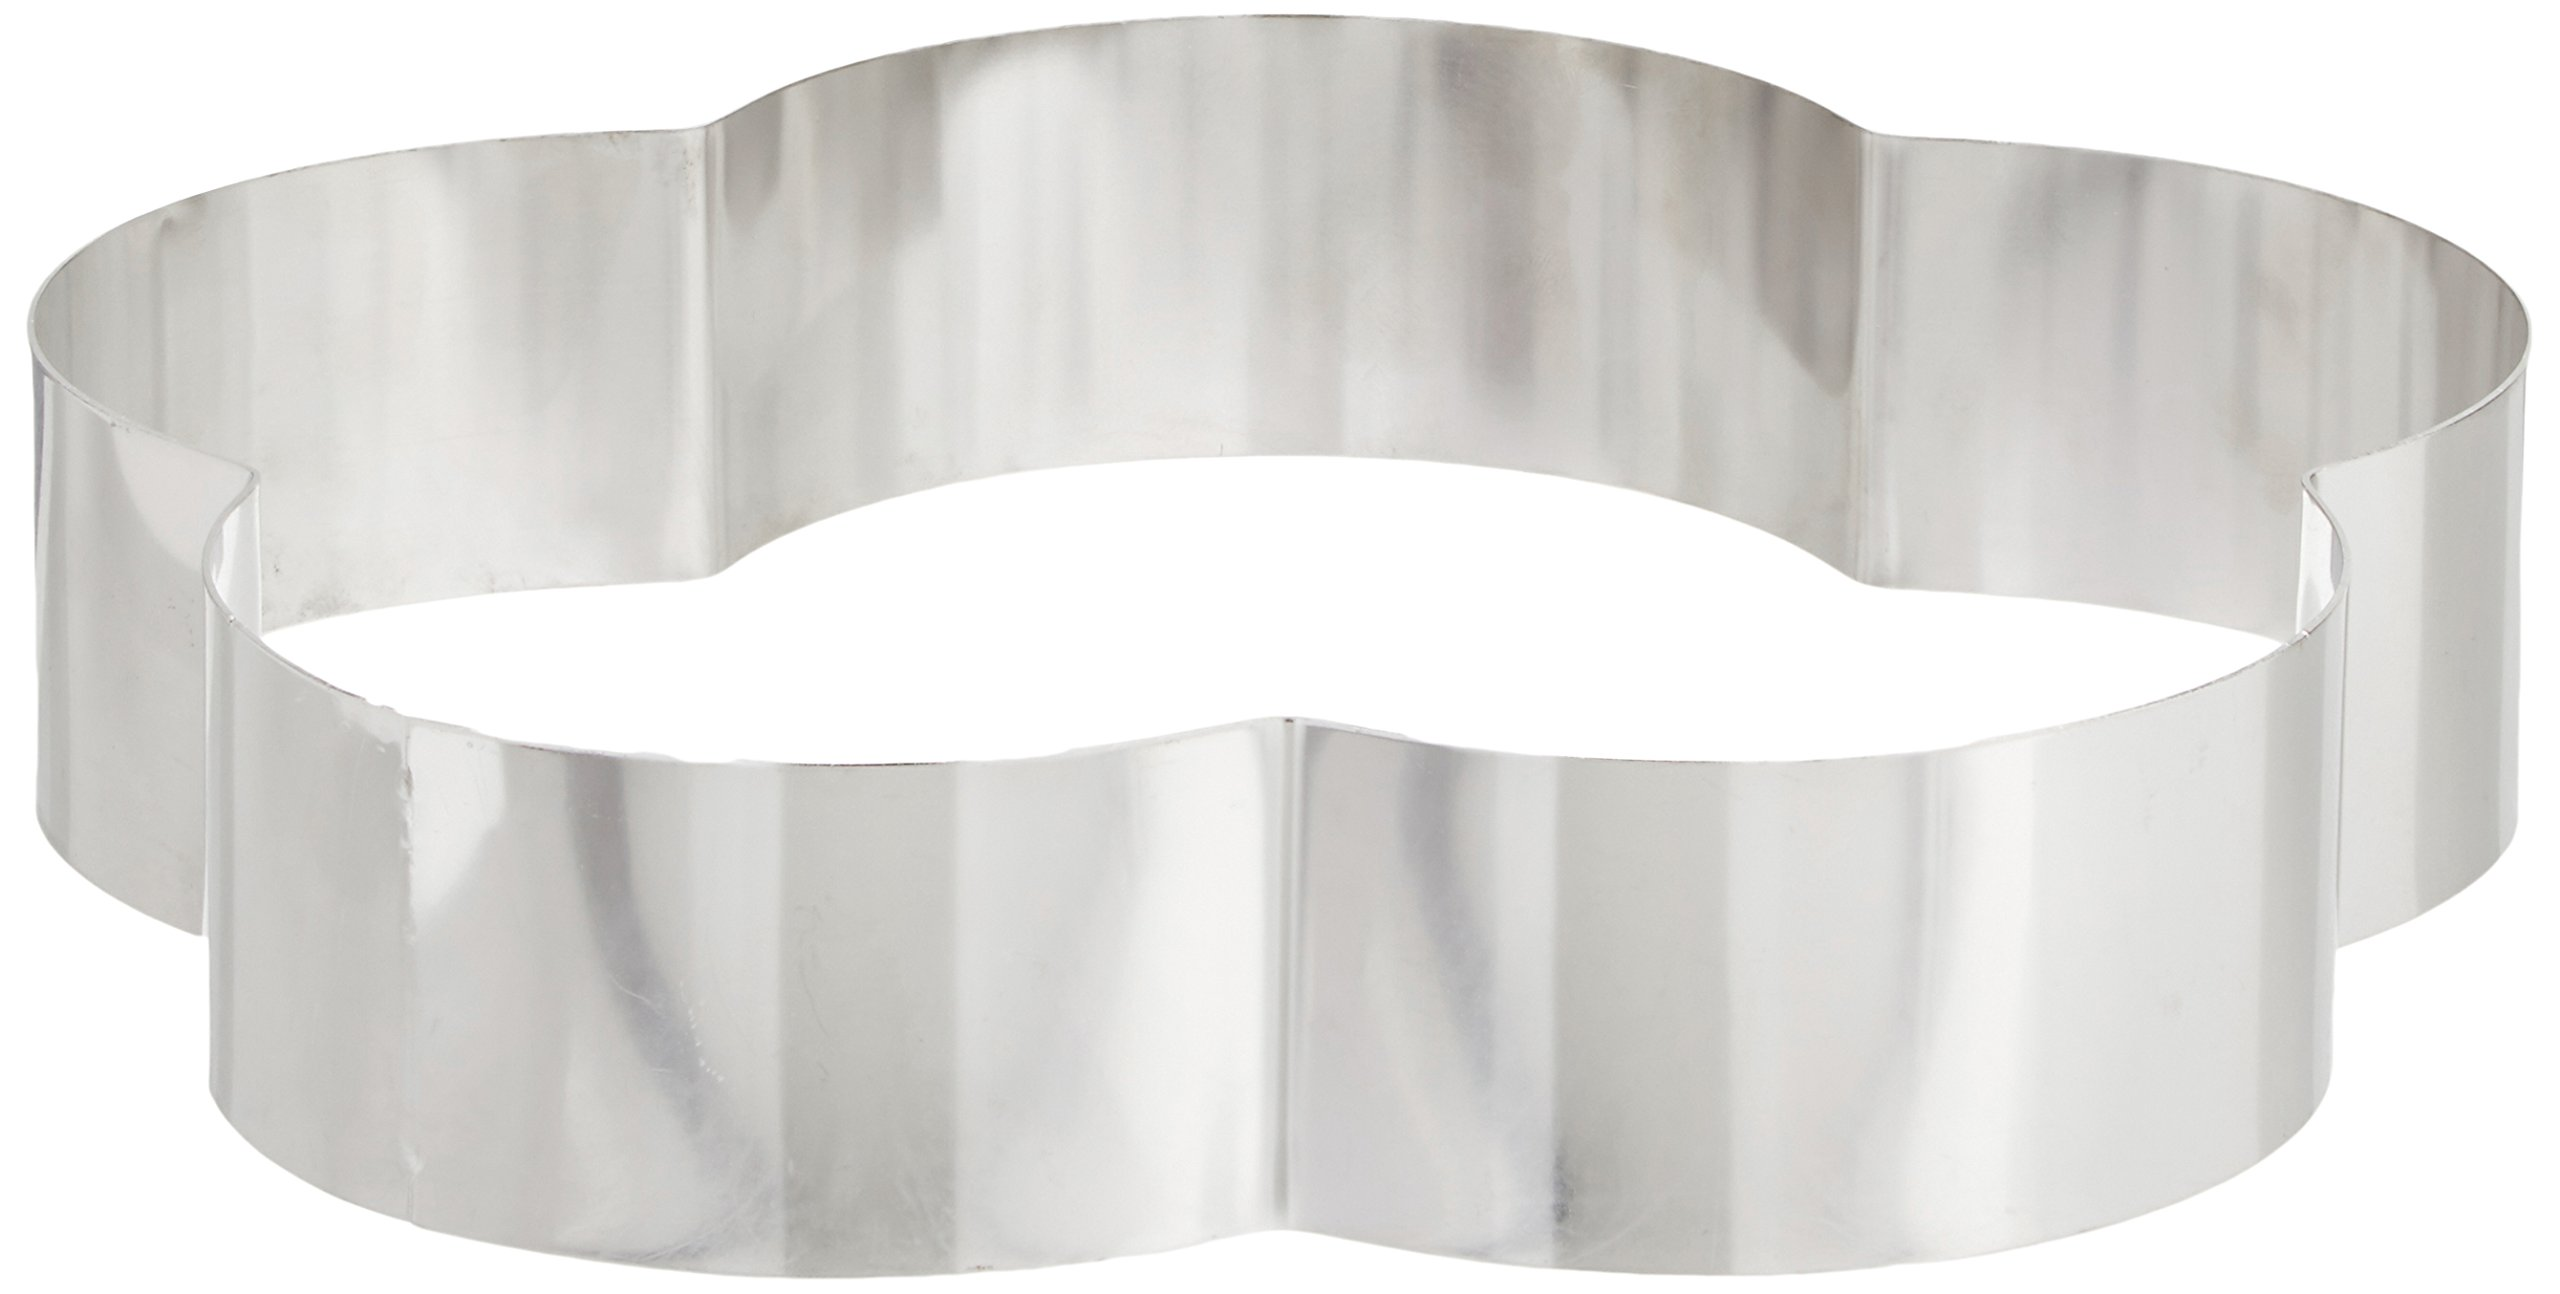 Fat Daddio's Stainless Steel Petal Cake and Pastry Ring, 10 Inch x 2 Inch by Fat Daddios